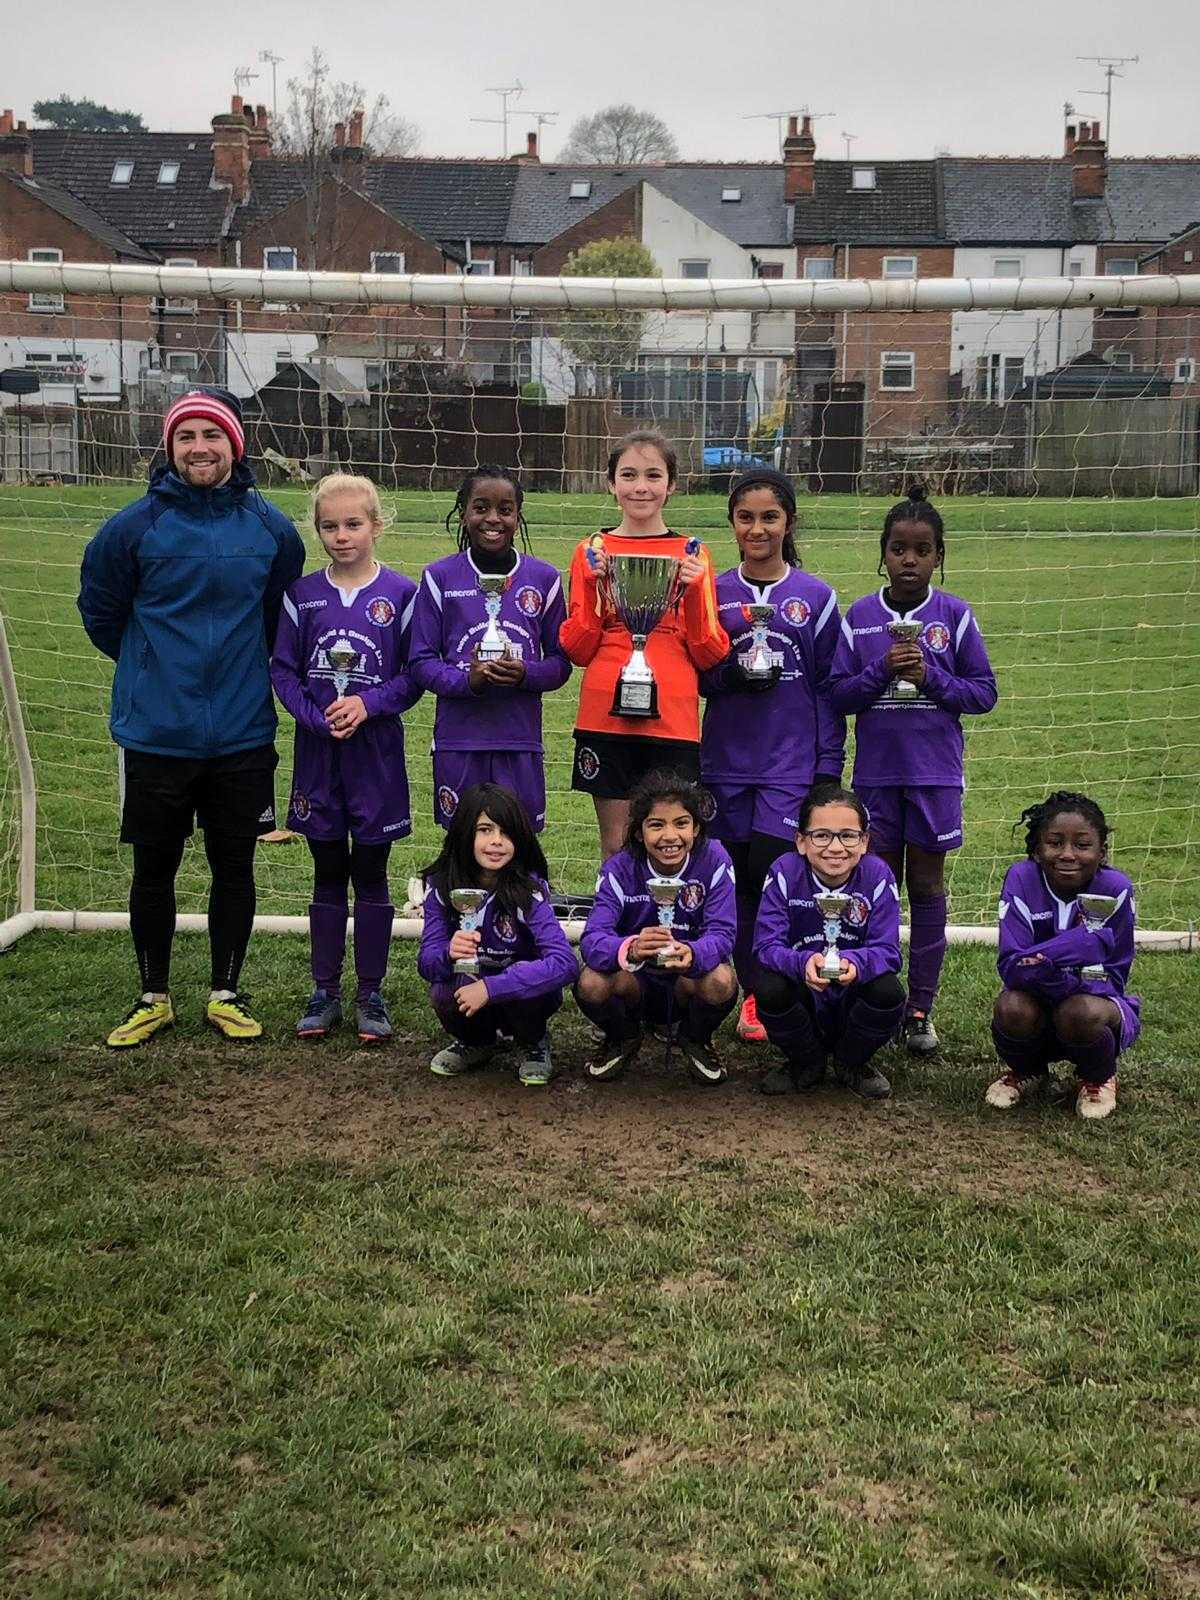 The Slough Town Under-10 girls team.